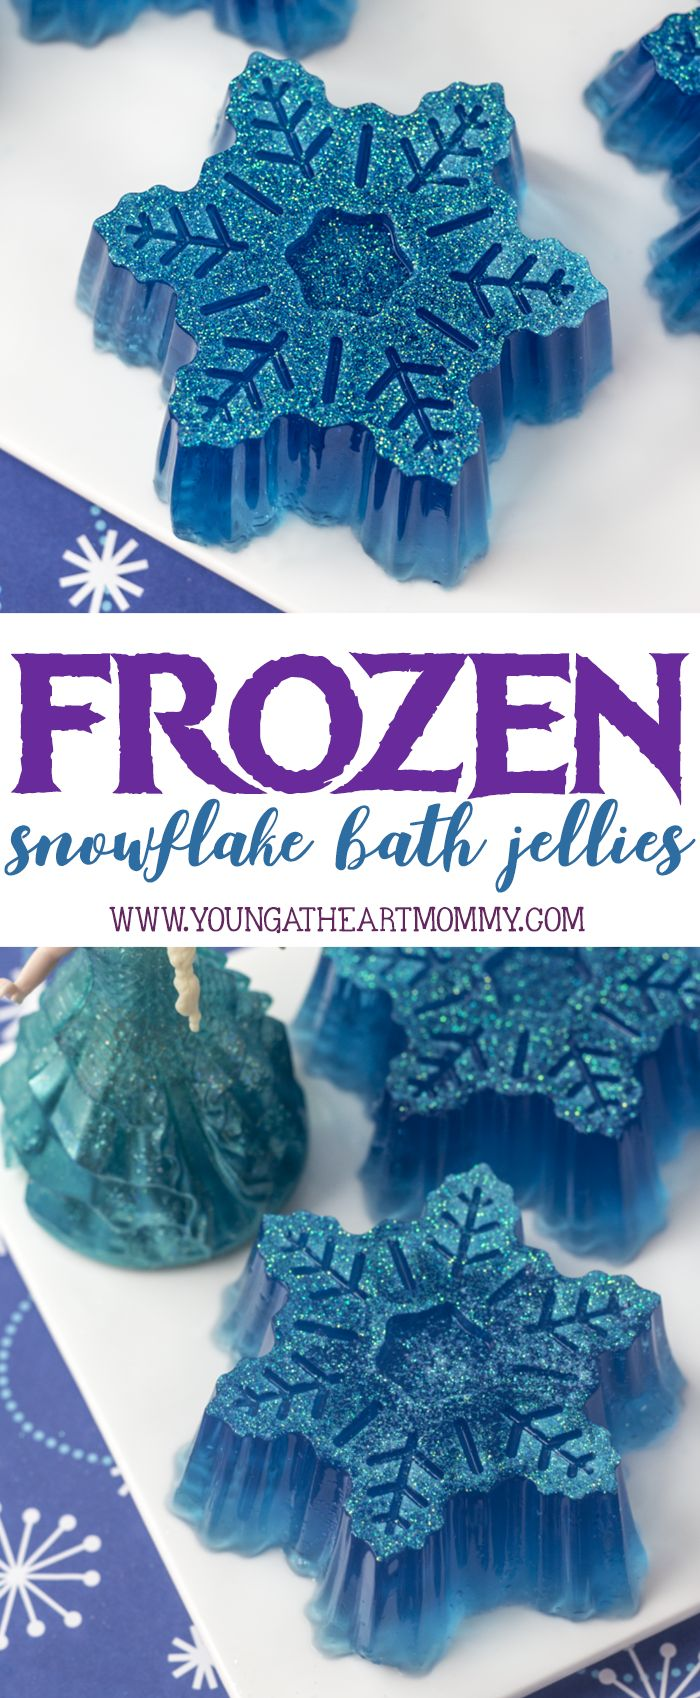 I am proud to be working with Suave Kids. #SuavePartner. Make your child's bath time routine magical with Suave Kids® Disney collections and these sparkly FROZEN inspired snowflake bath jellies!